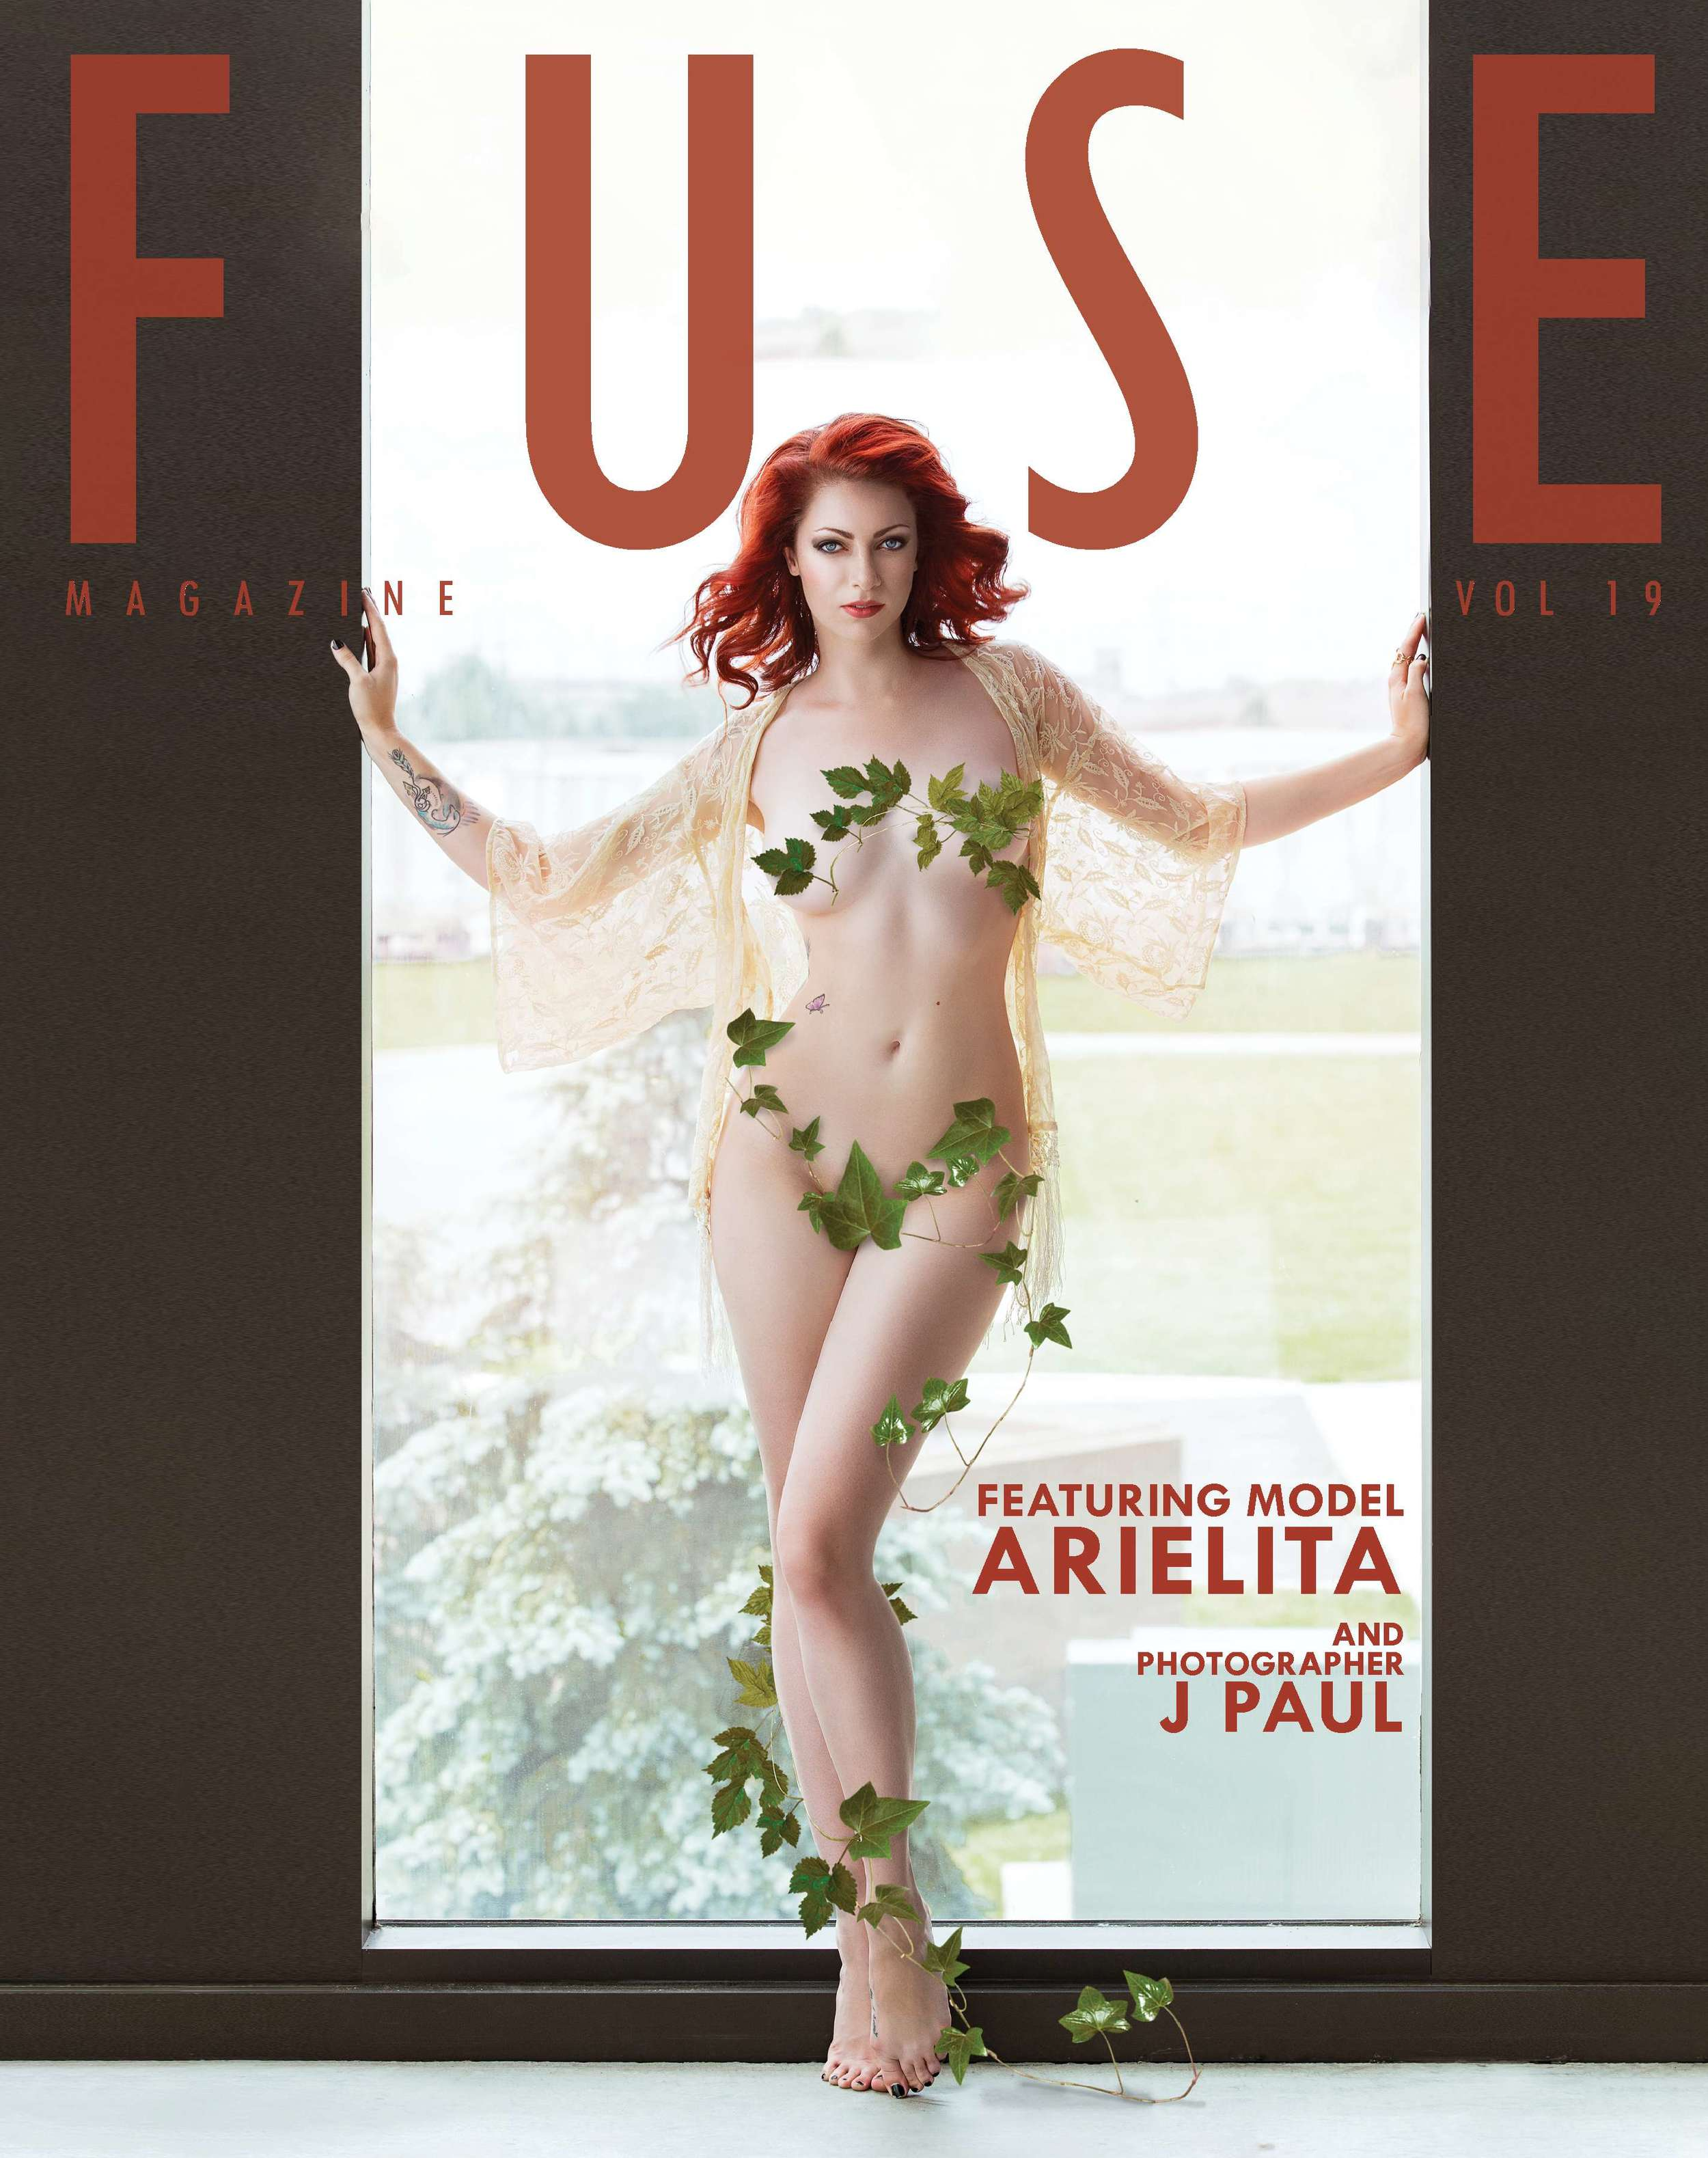 FUSE -VOL19 - 2015 - Draft.indd_42.jpg